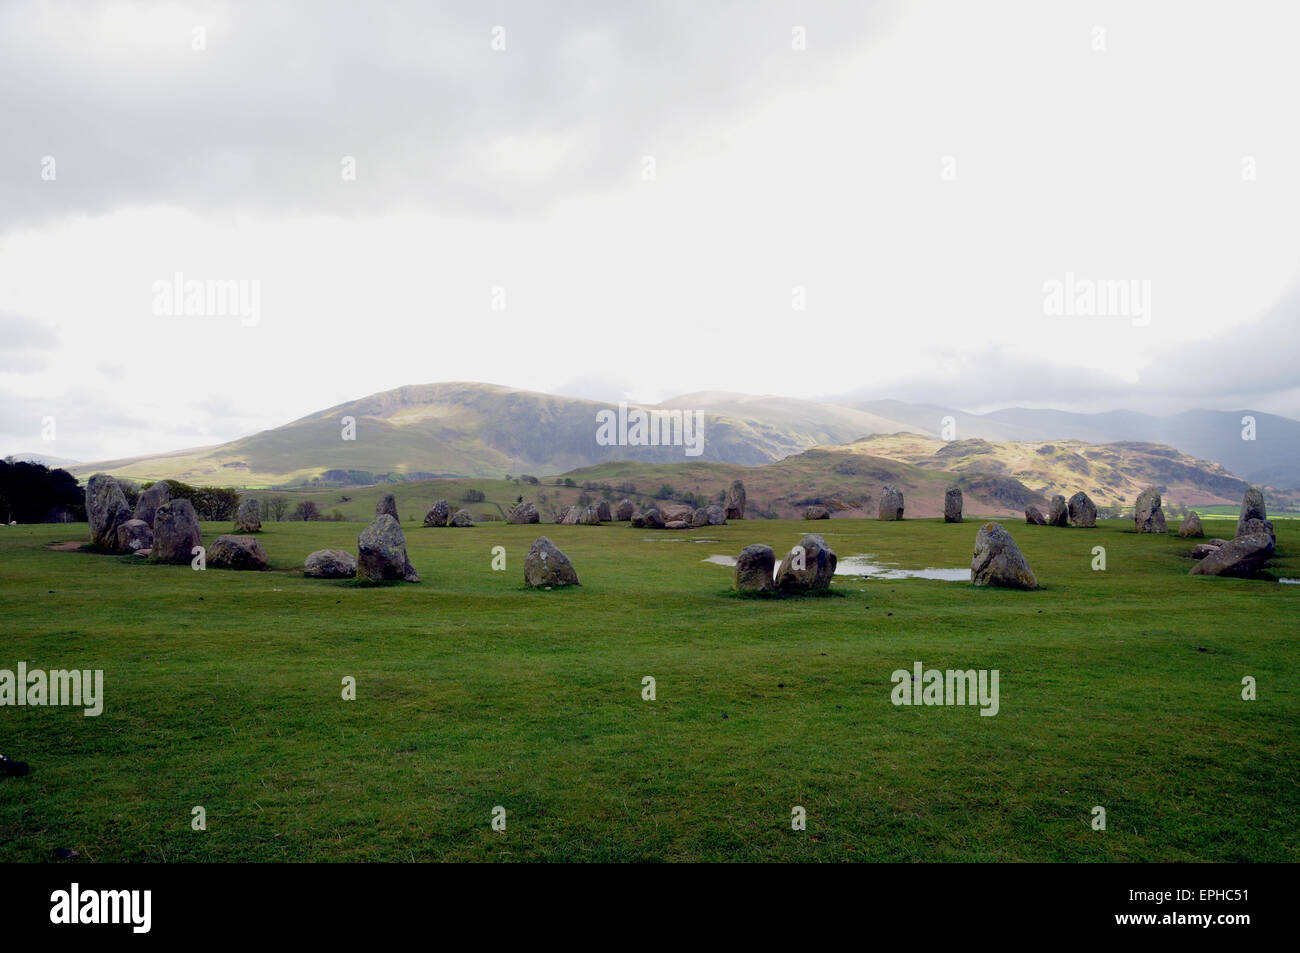 Castlerigg stone circle, a neolithic monument near Keswick in the English Lake District pictured here under typically - Stock Image